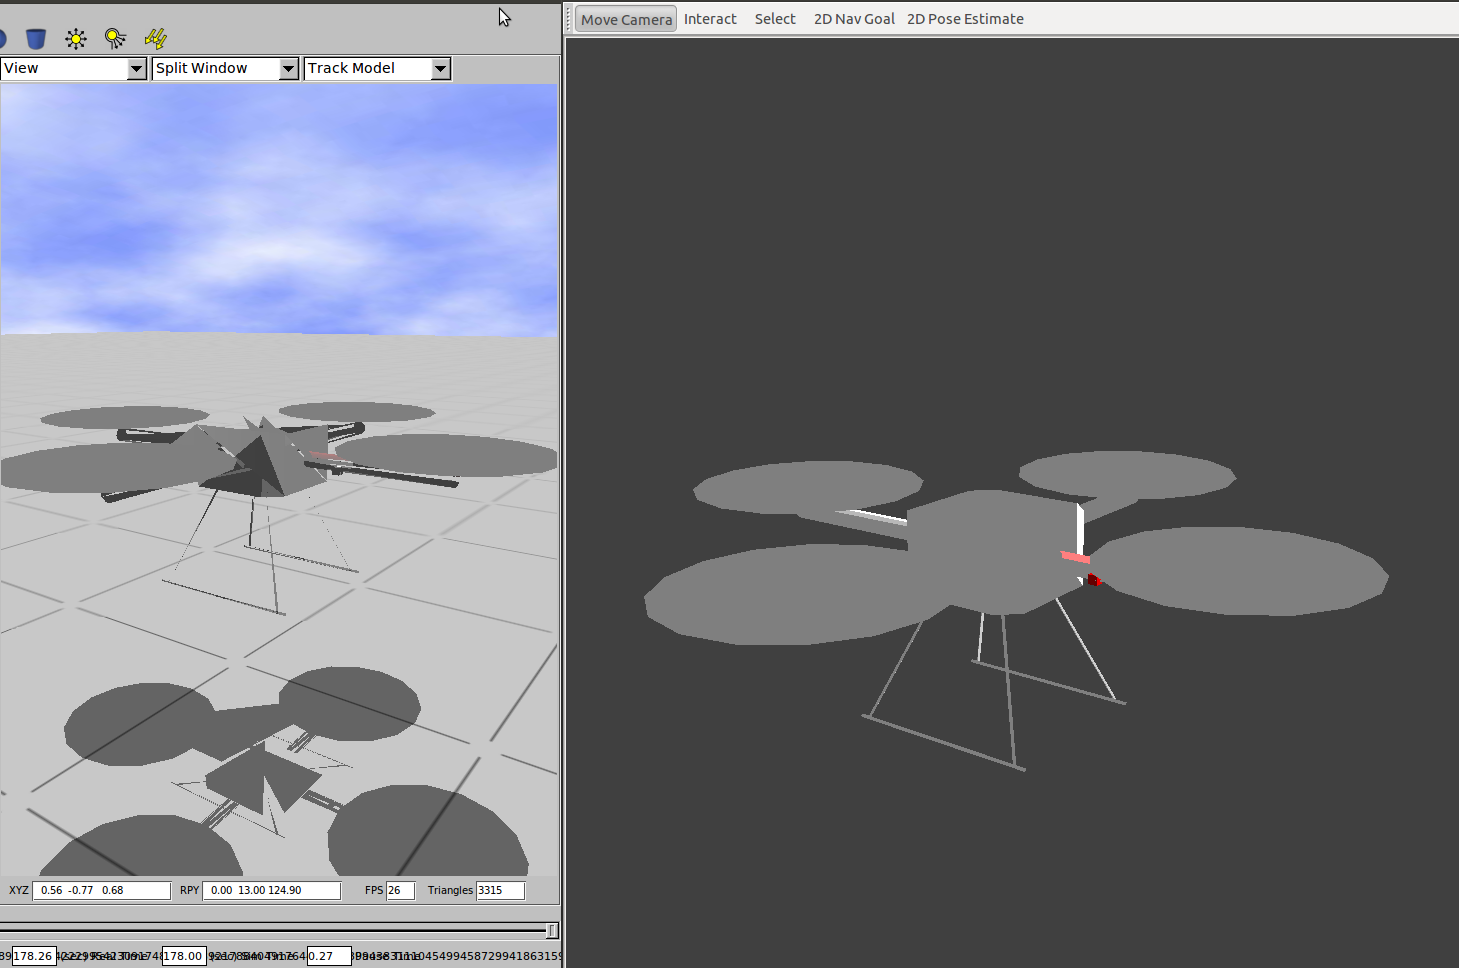 Exported with 2.61, gazebo left, rviz right